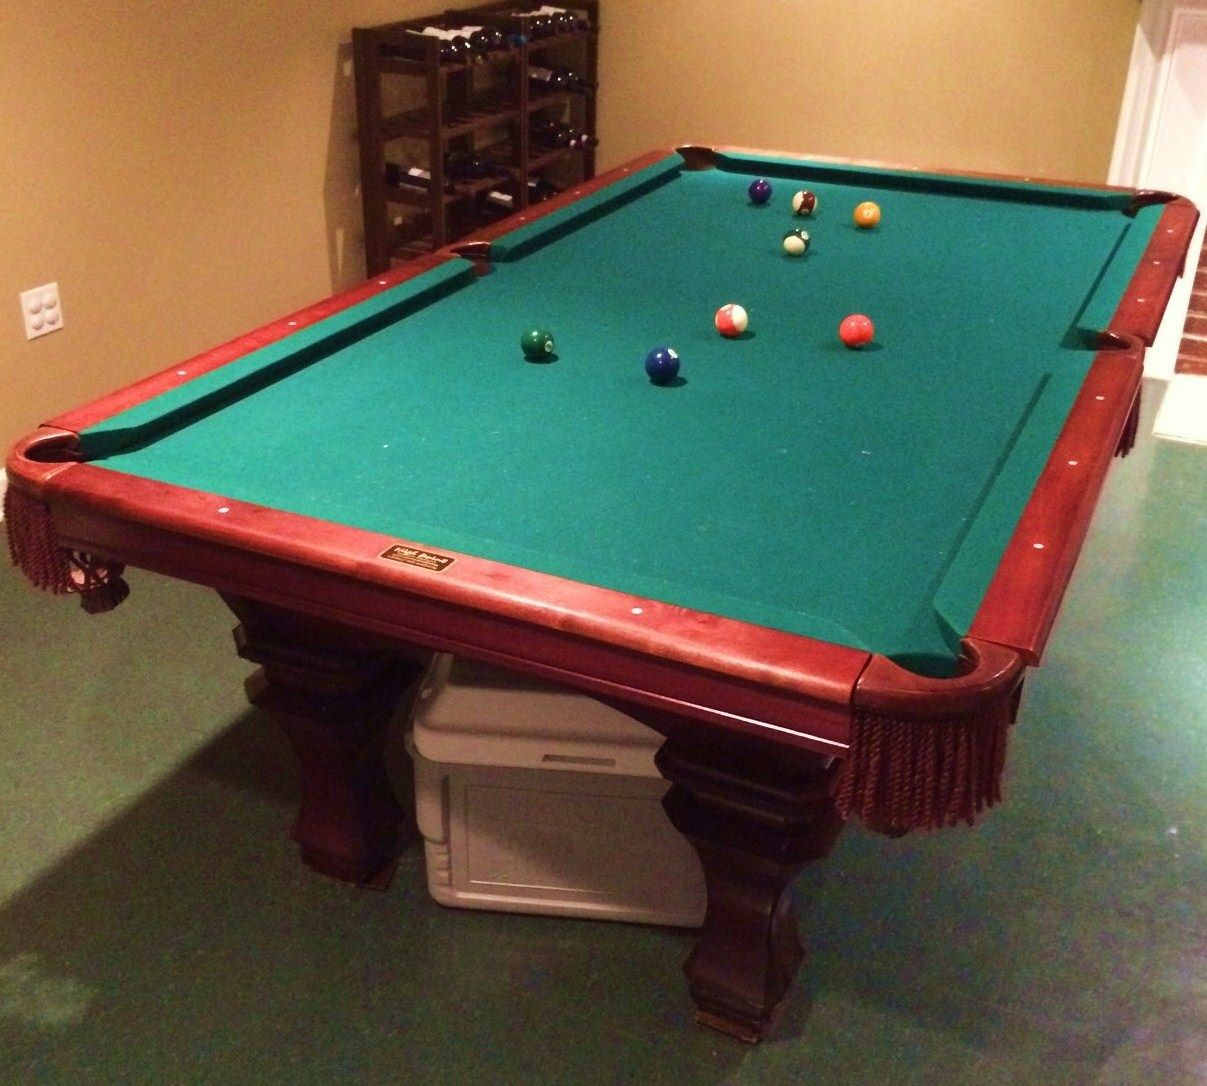 A26 Peter Vitalie Billiards Pool Table, SOLD